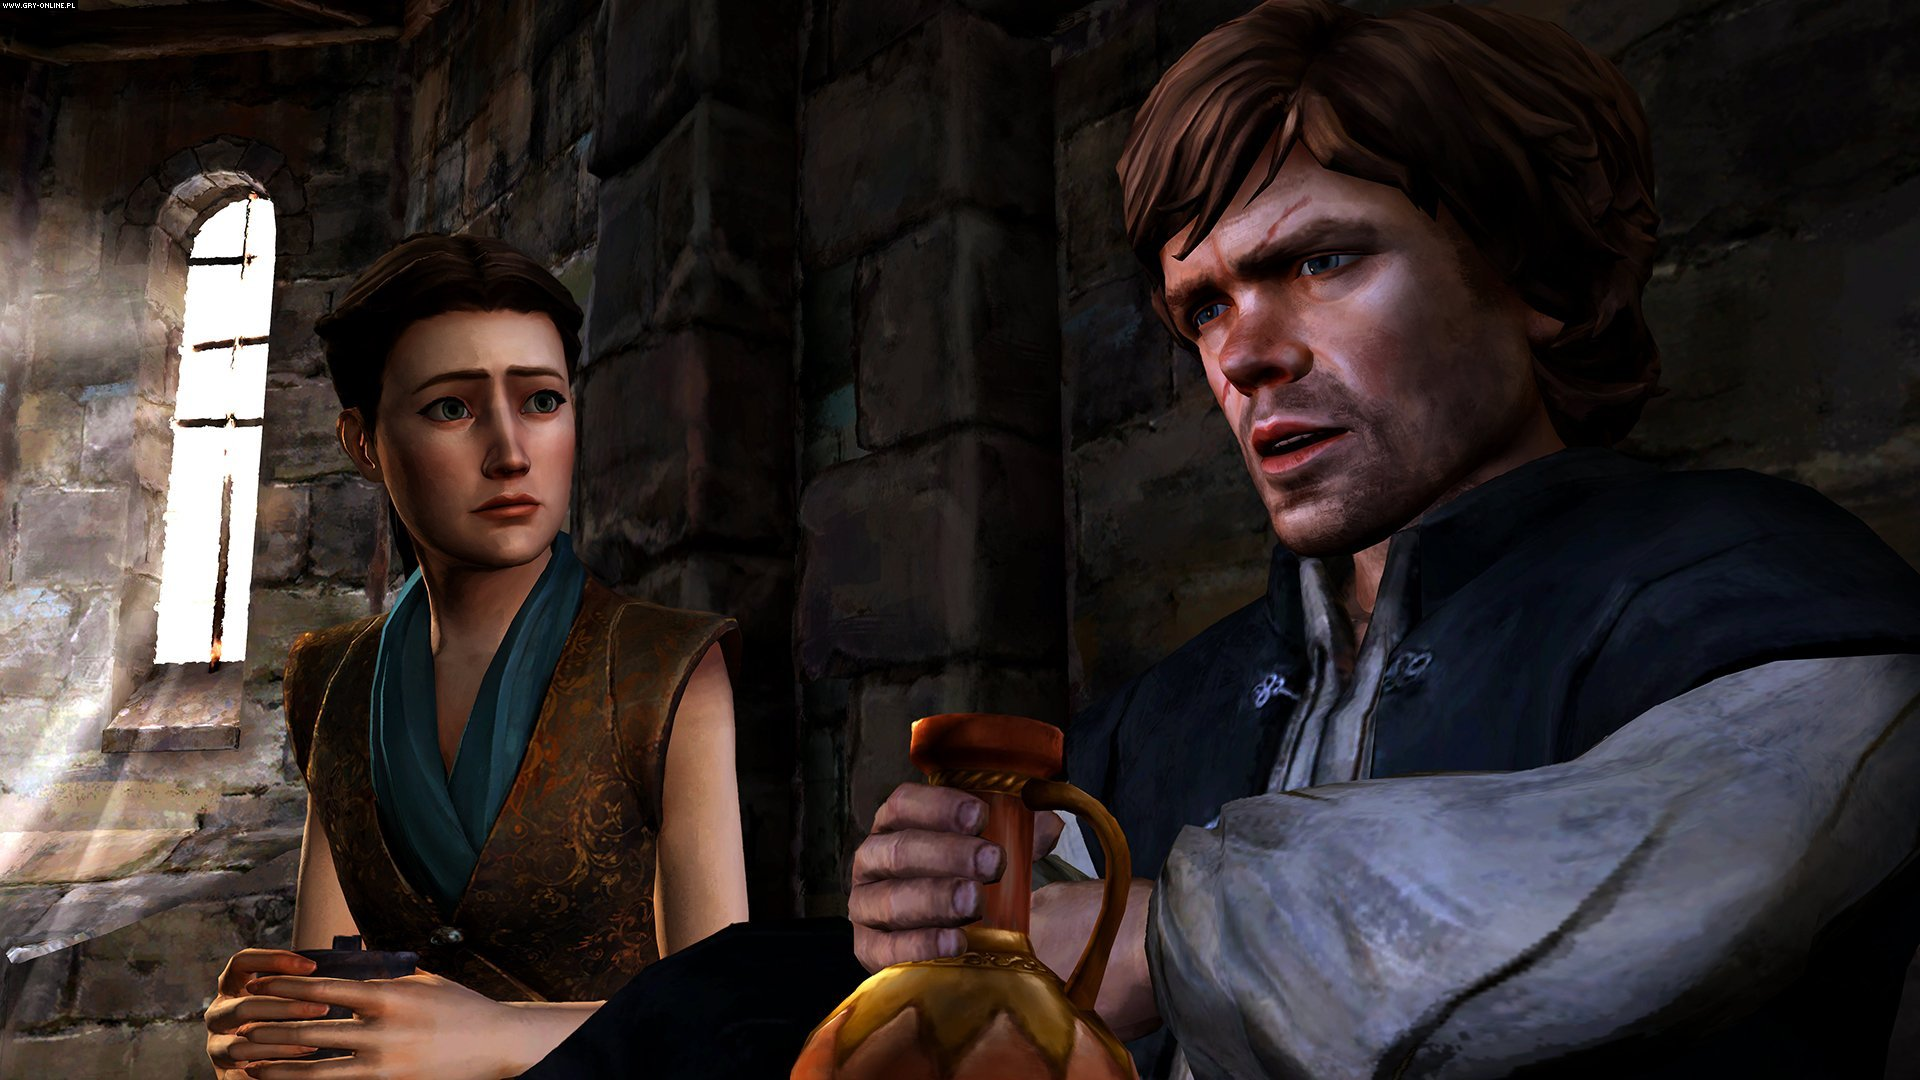 Game of Thrones: A Telltale Games Series - Season One PC, X360, PS3, PS4, XONE, AND, iOS Games Image 7/44, Telltale Games